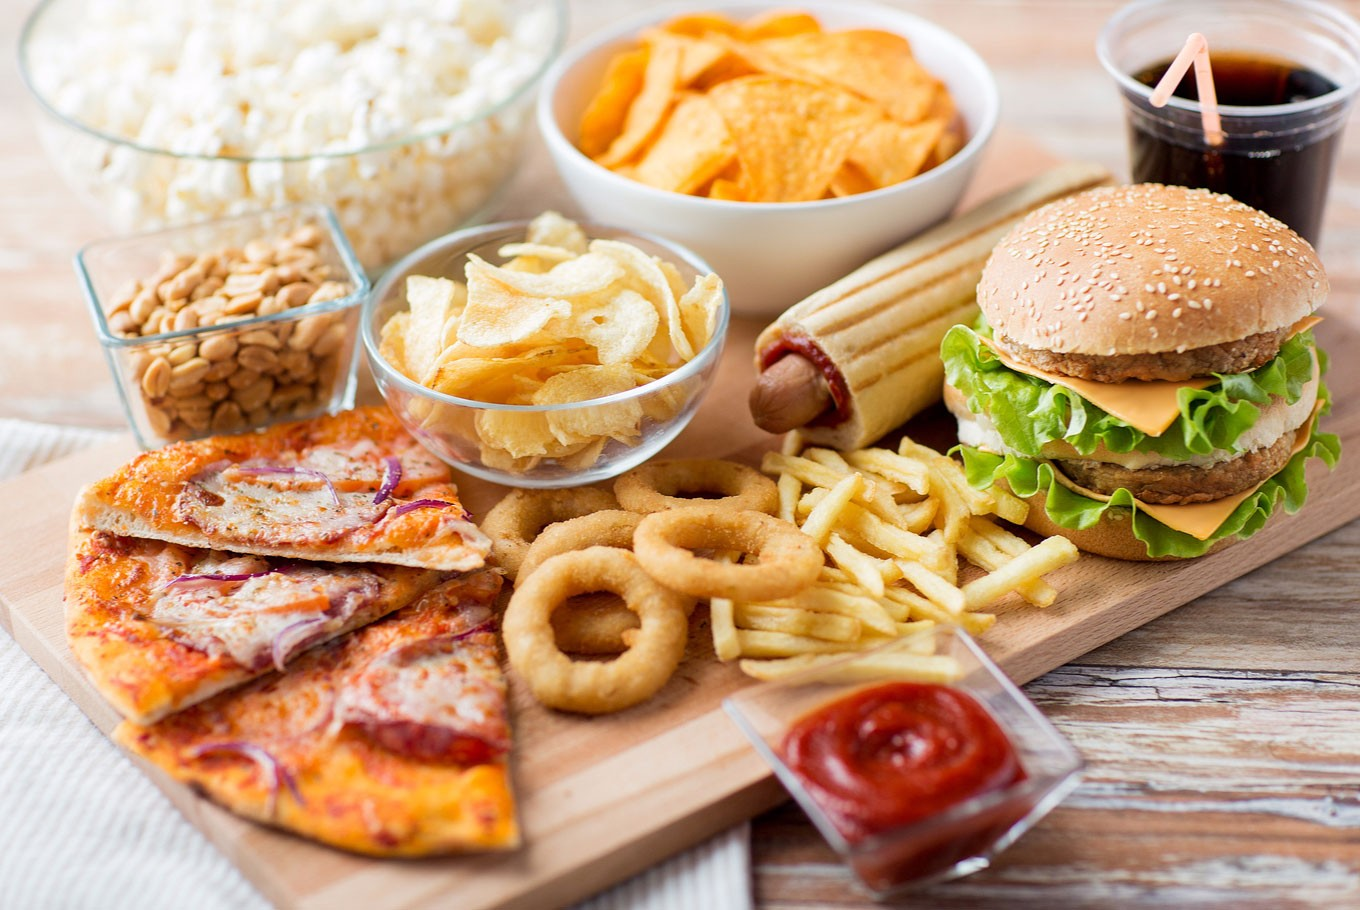 Weekly consumption of fast food can cause heart disease: Expert